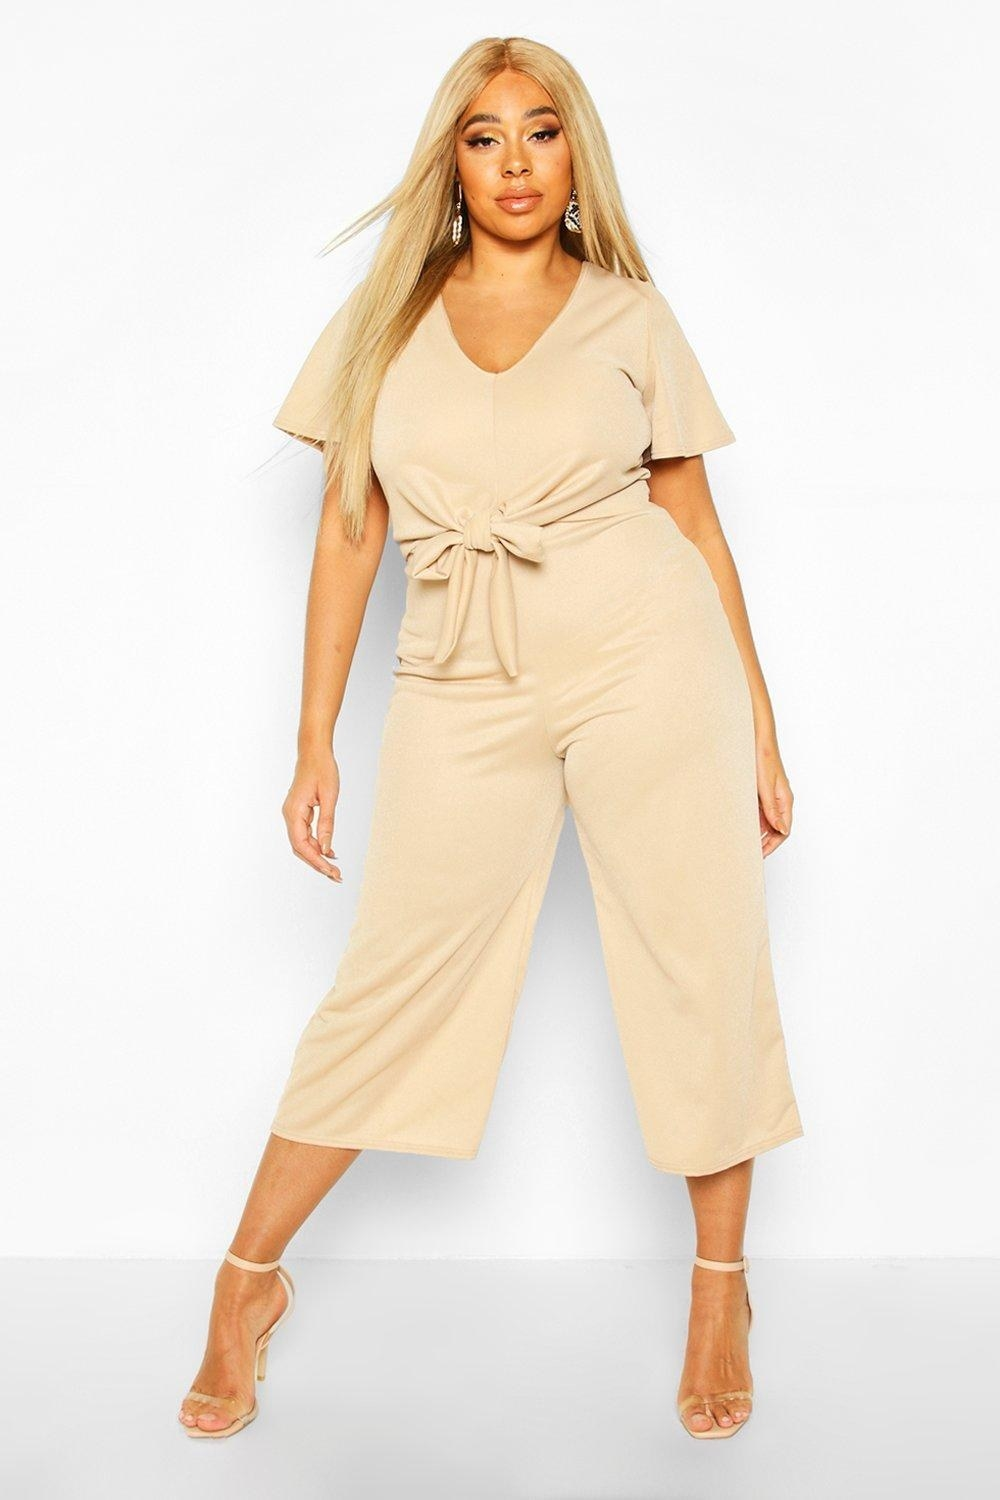 a model in a tan colored jump suit with angel sleeves and a tied bow in the front